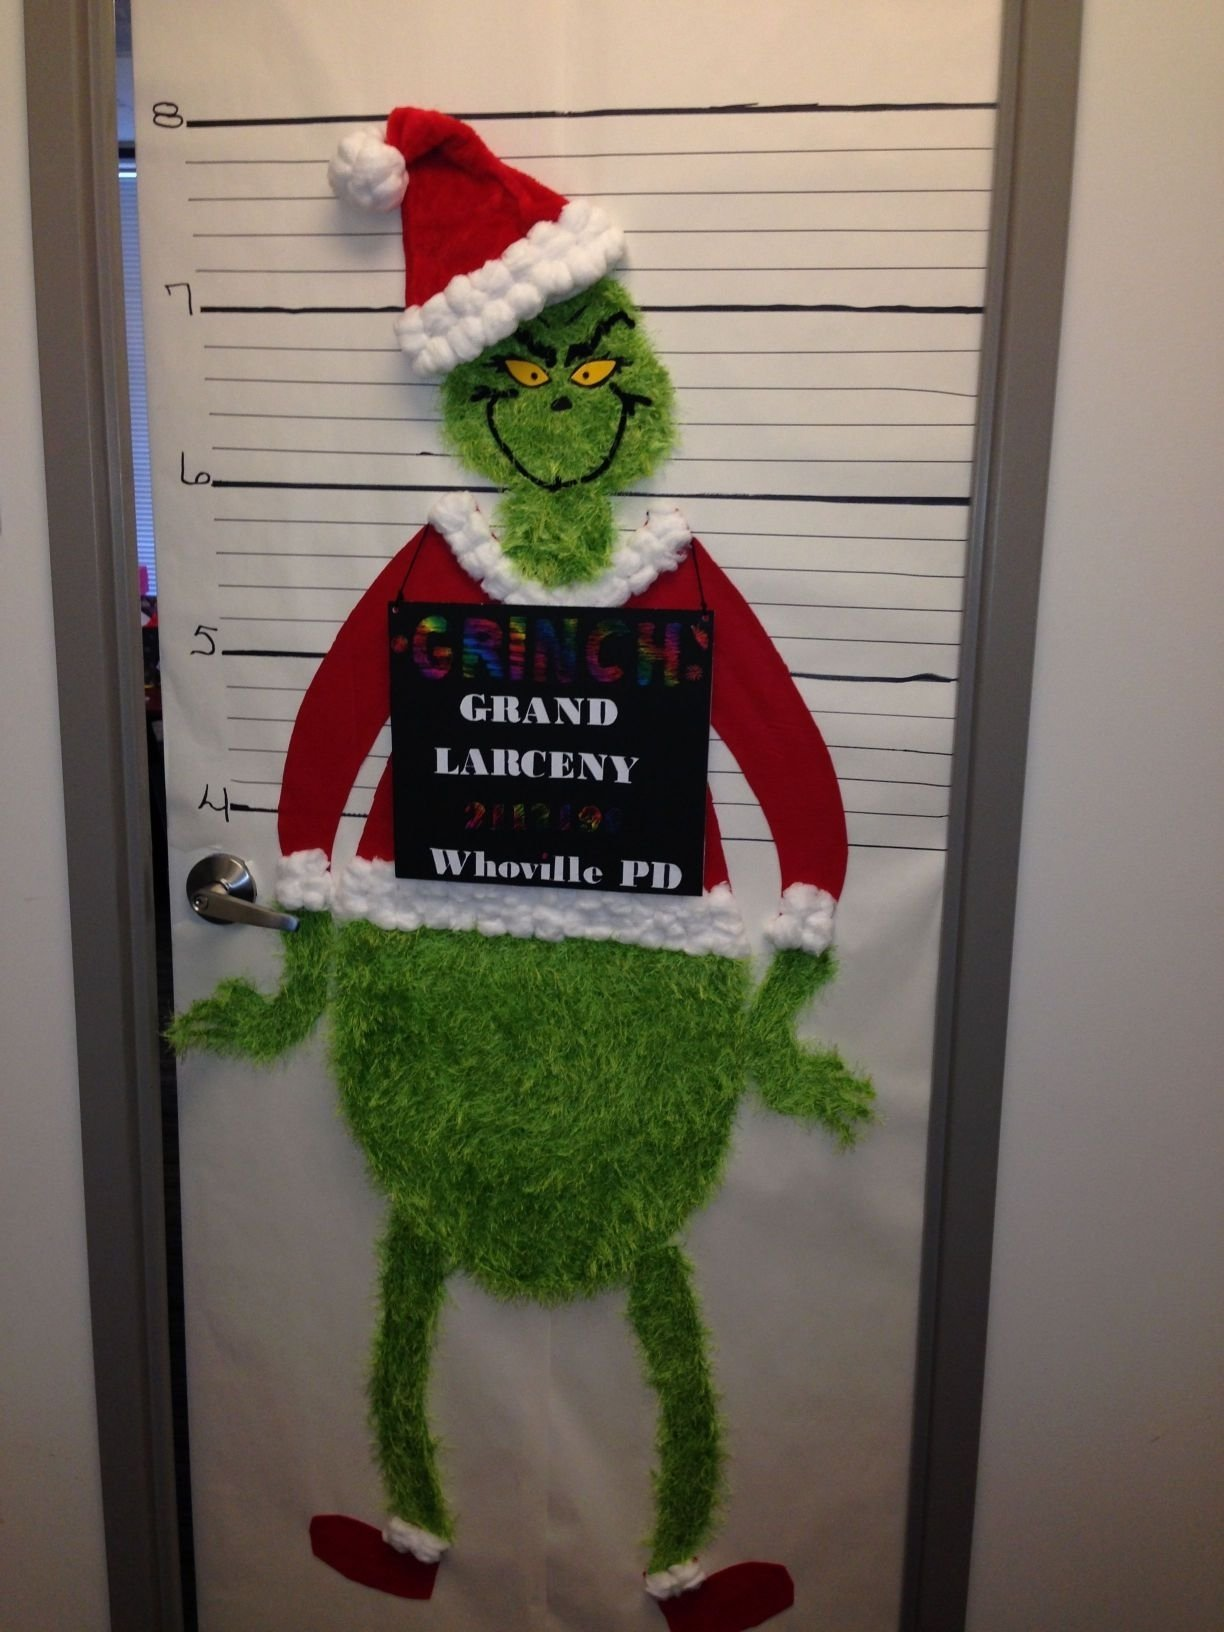 10 Most Recommended Christmas Door Decorating Contest Ideas incredible the grinch christmas office door decorating contest 1